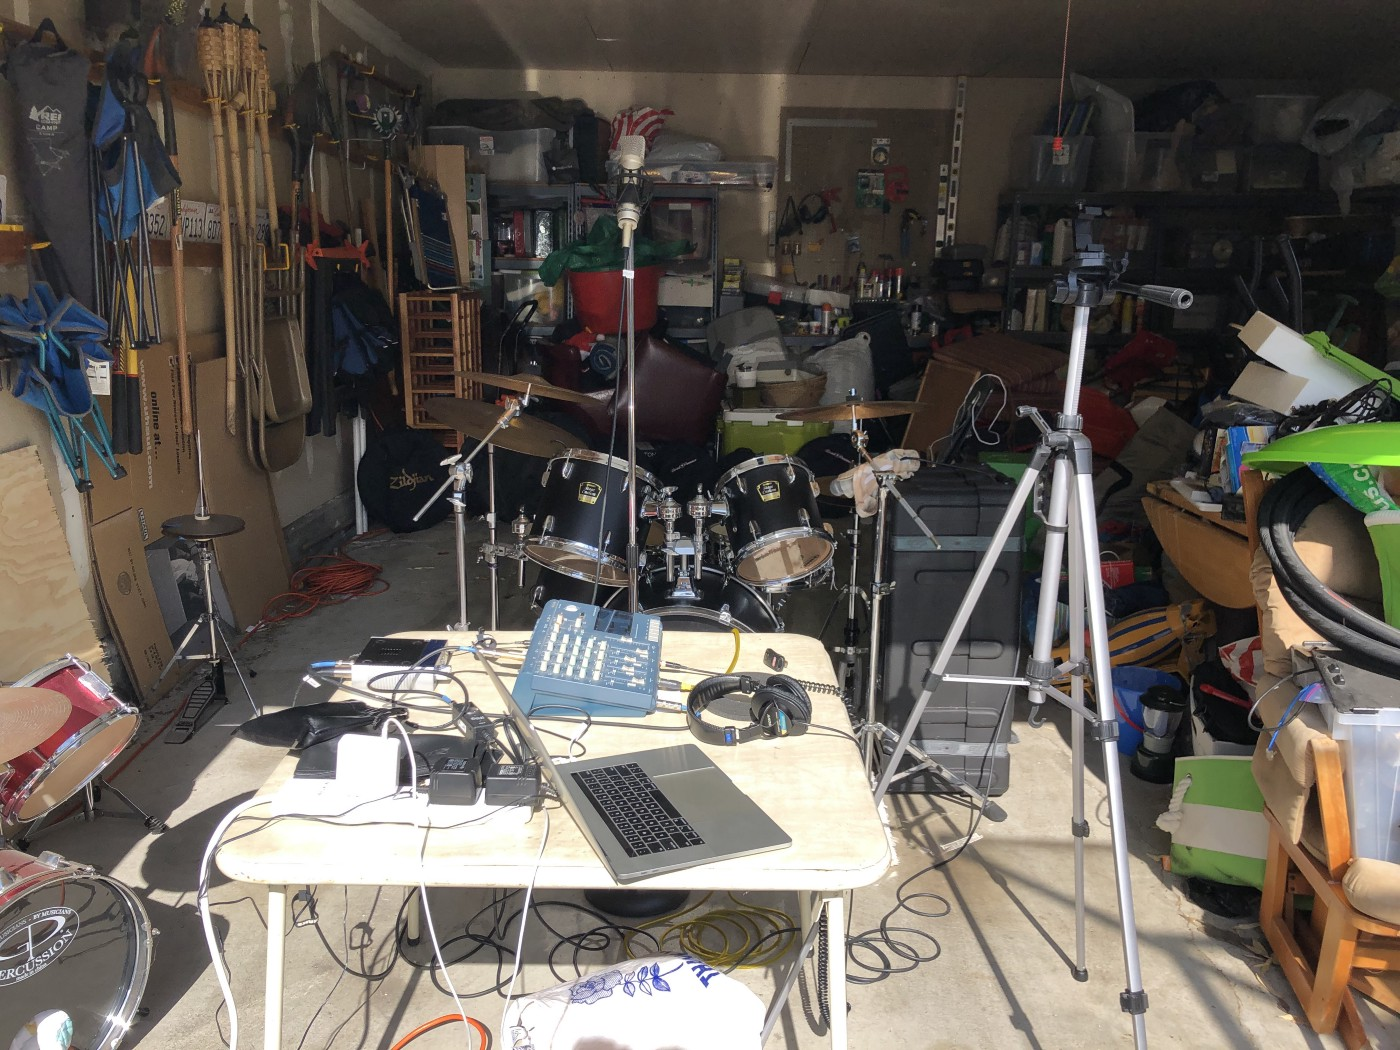 Drums and recording equipment.